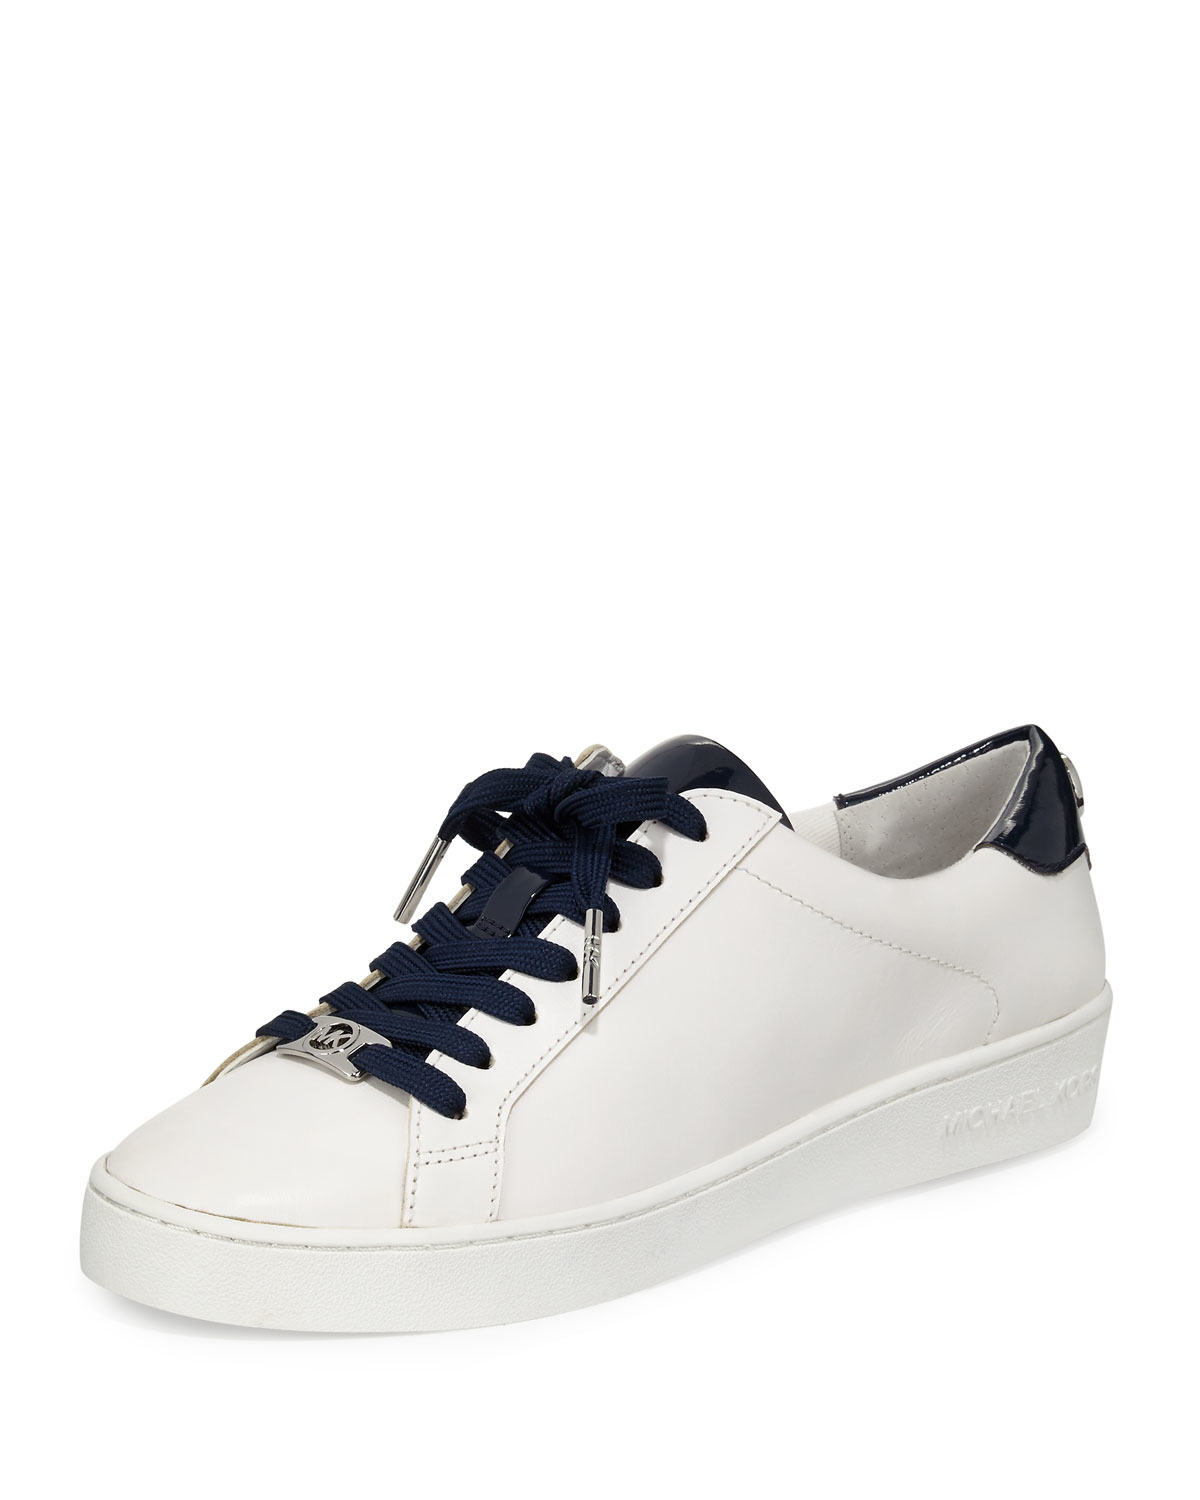 michael michael kors irving leather lace up sneaker in blue lyst. Black Bedroom Furniture Sets. Home Design Ideas